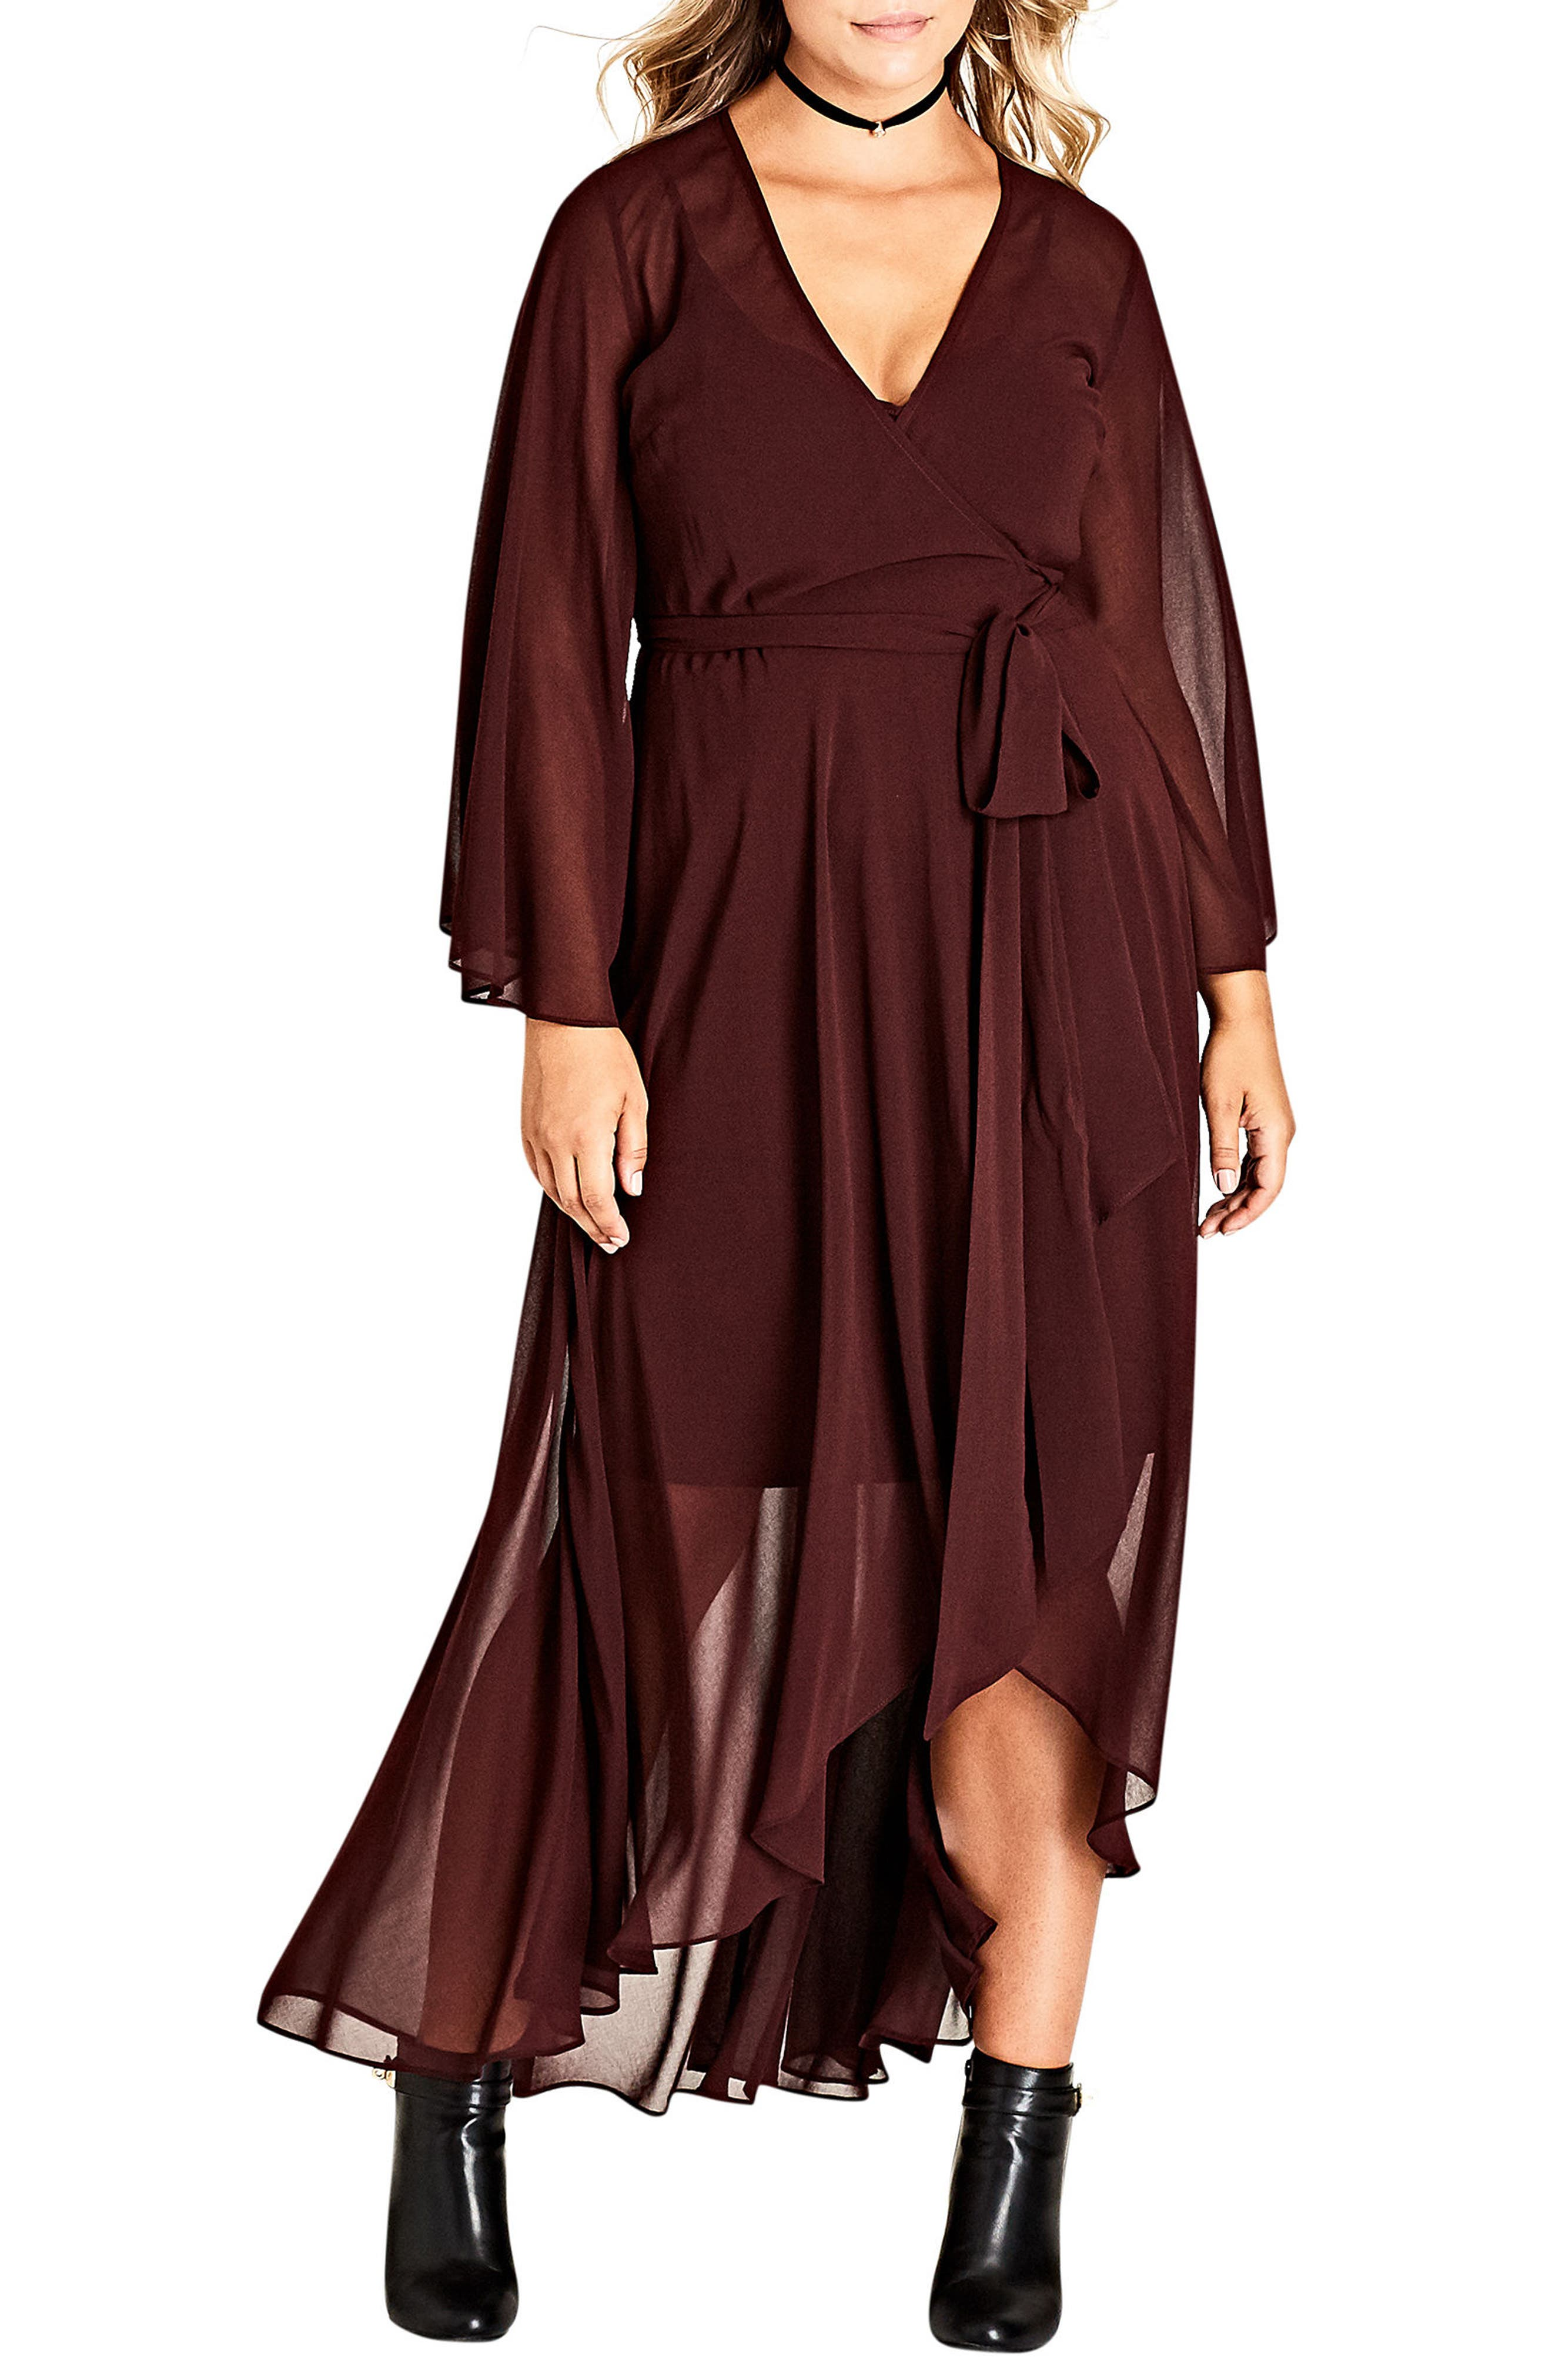 Alternate Image 1 Selected - City Chic 'Fleetwood' Maxi Dress (Plus Size)